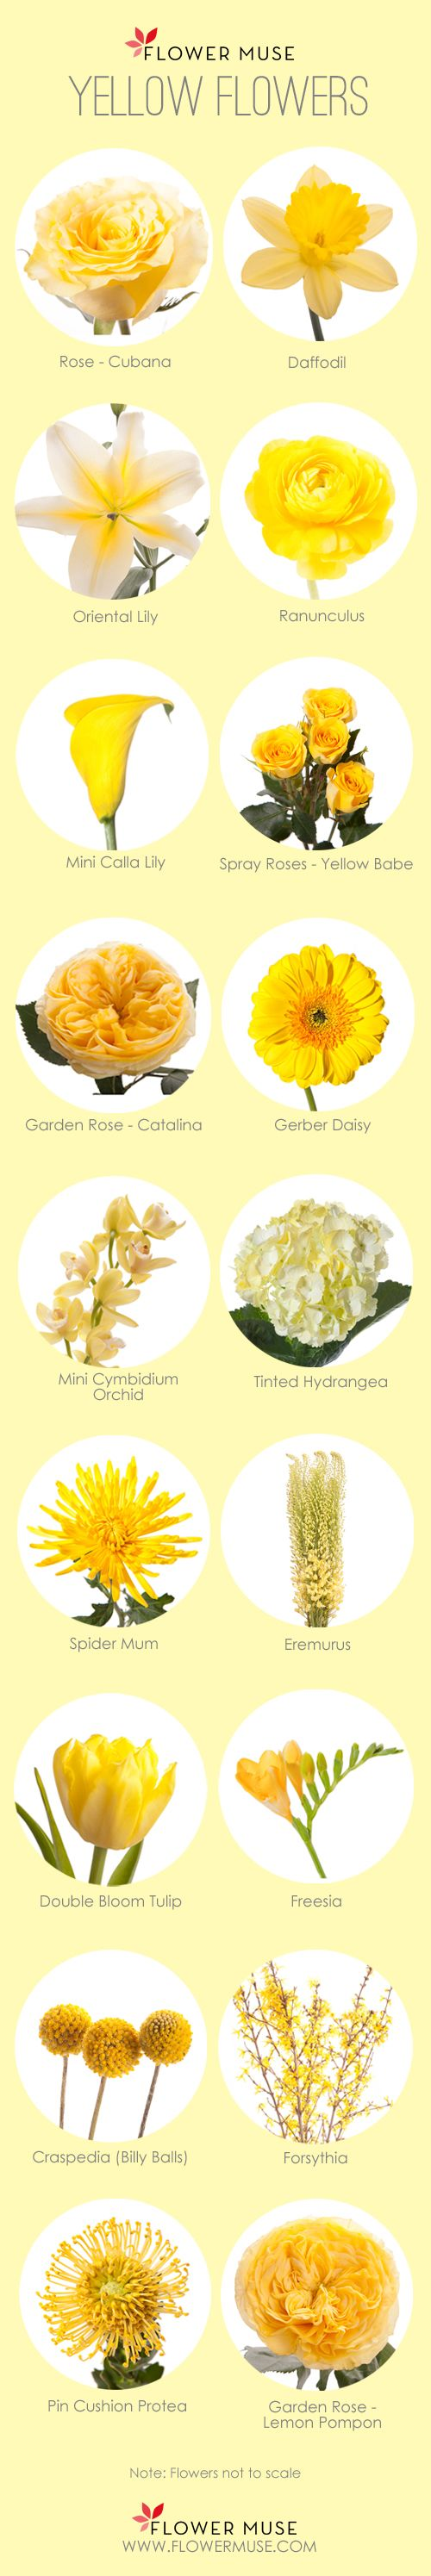 Looking for some sunny inspiration? We share our favorite yellow flowers. From garden roses to tulips, these blooms are perfect for your wedding or event.